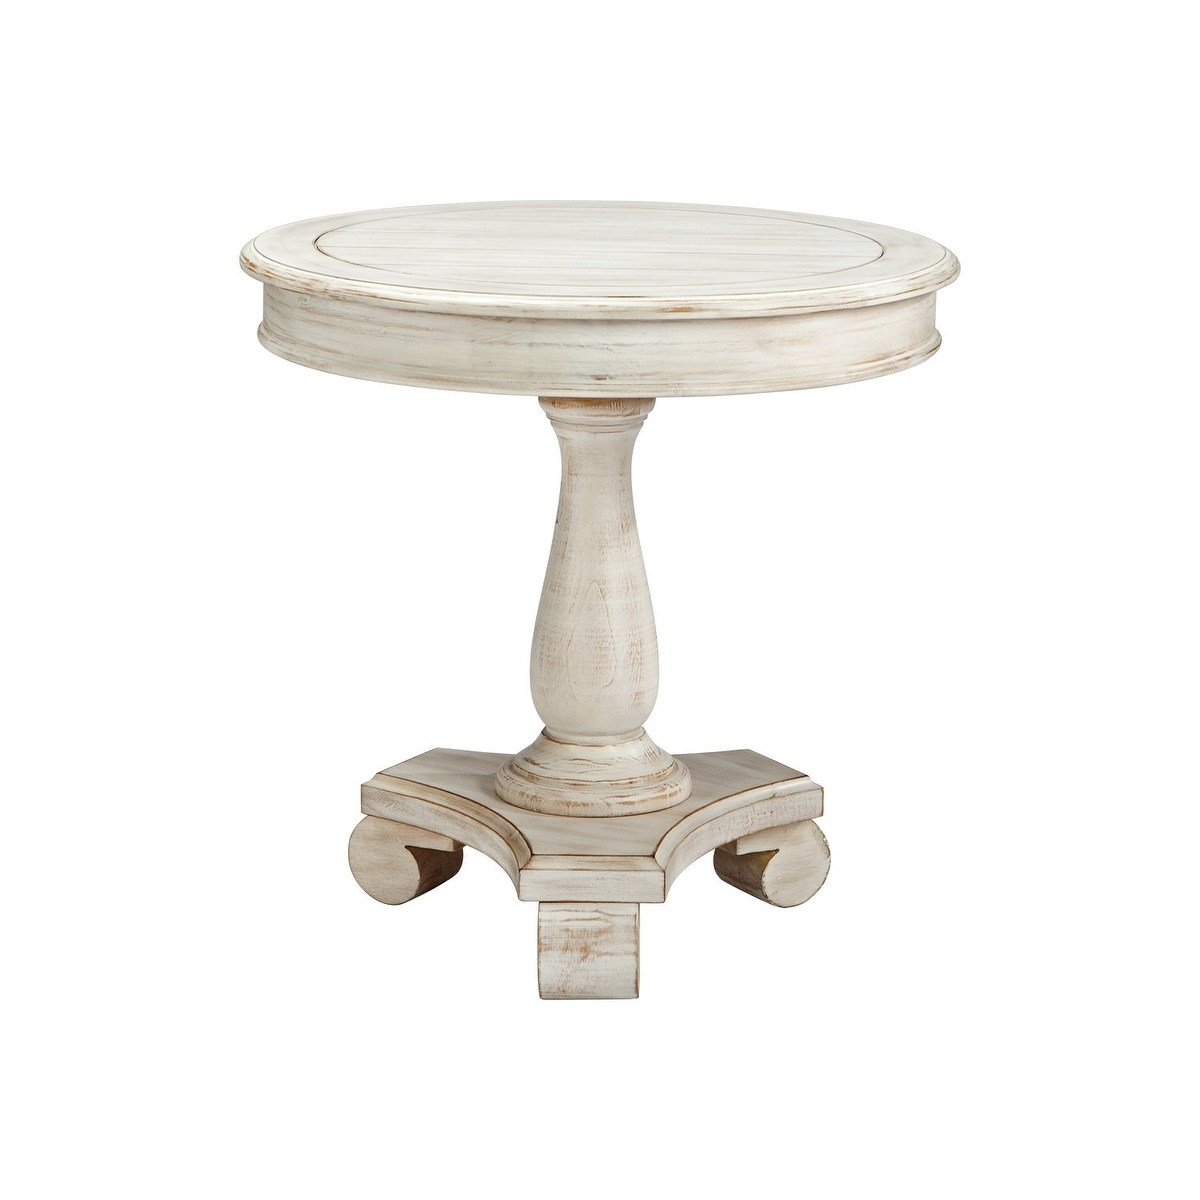 signature design ashley mirimyn white round accent table pedestal wood free shipping today pottery barn bookcase tablecloth for side tables toronto coffee and patio furniture with